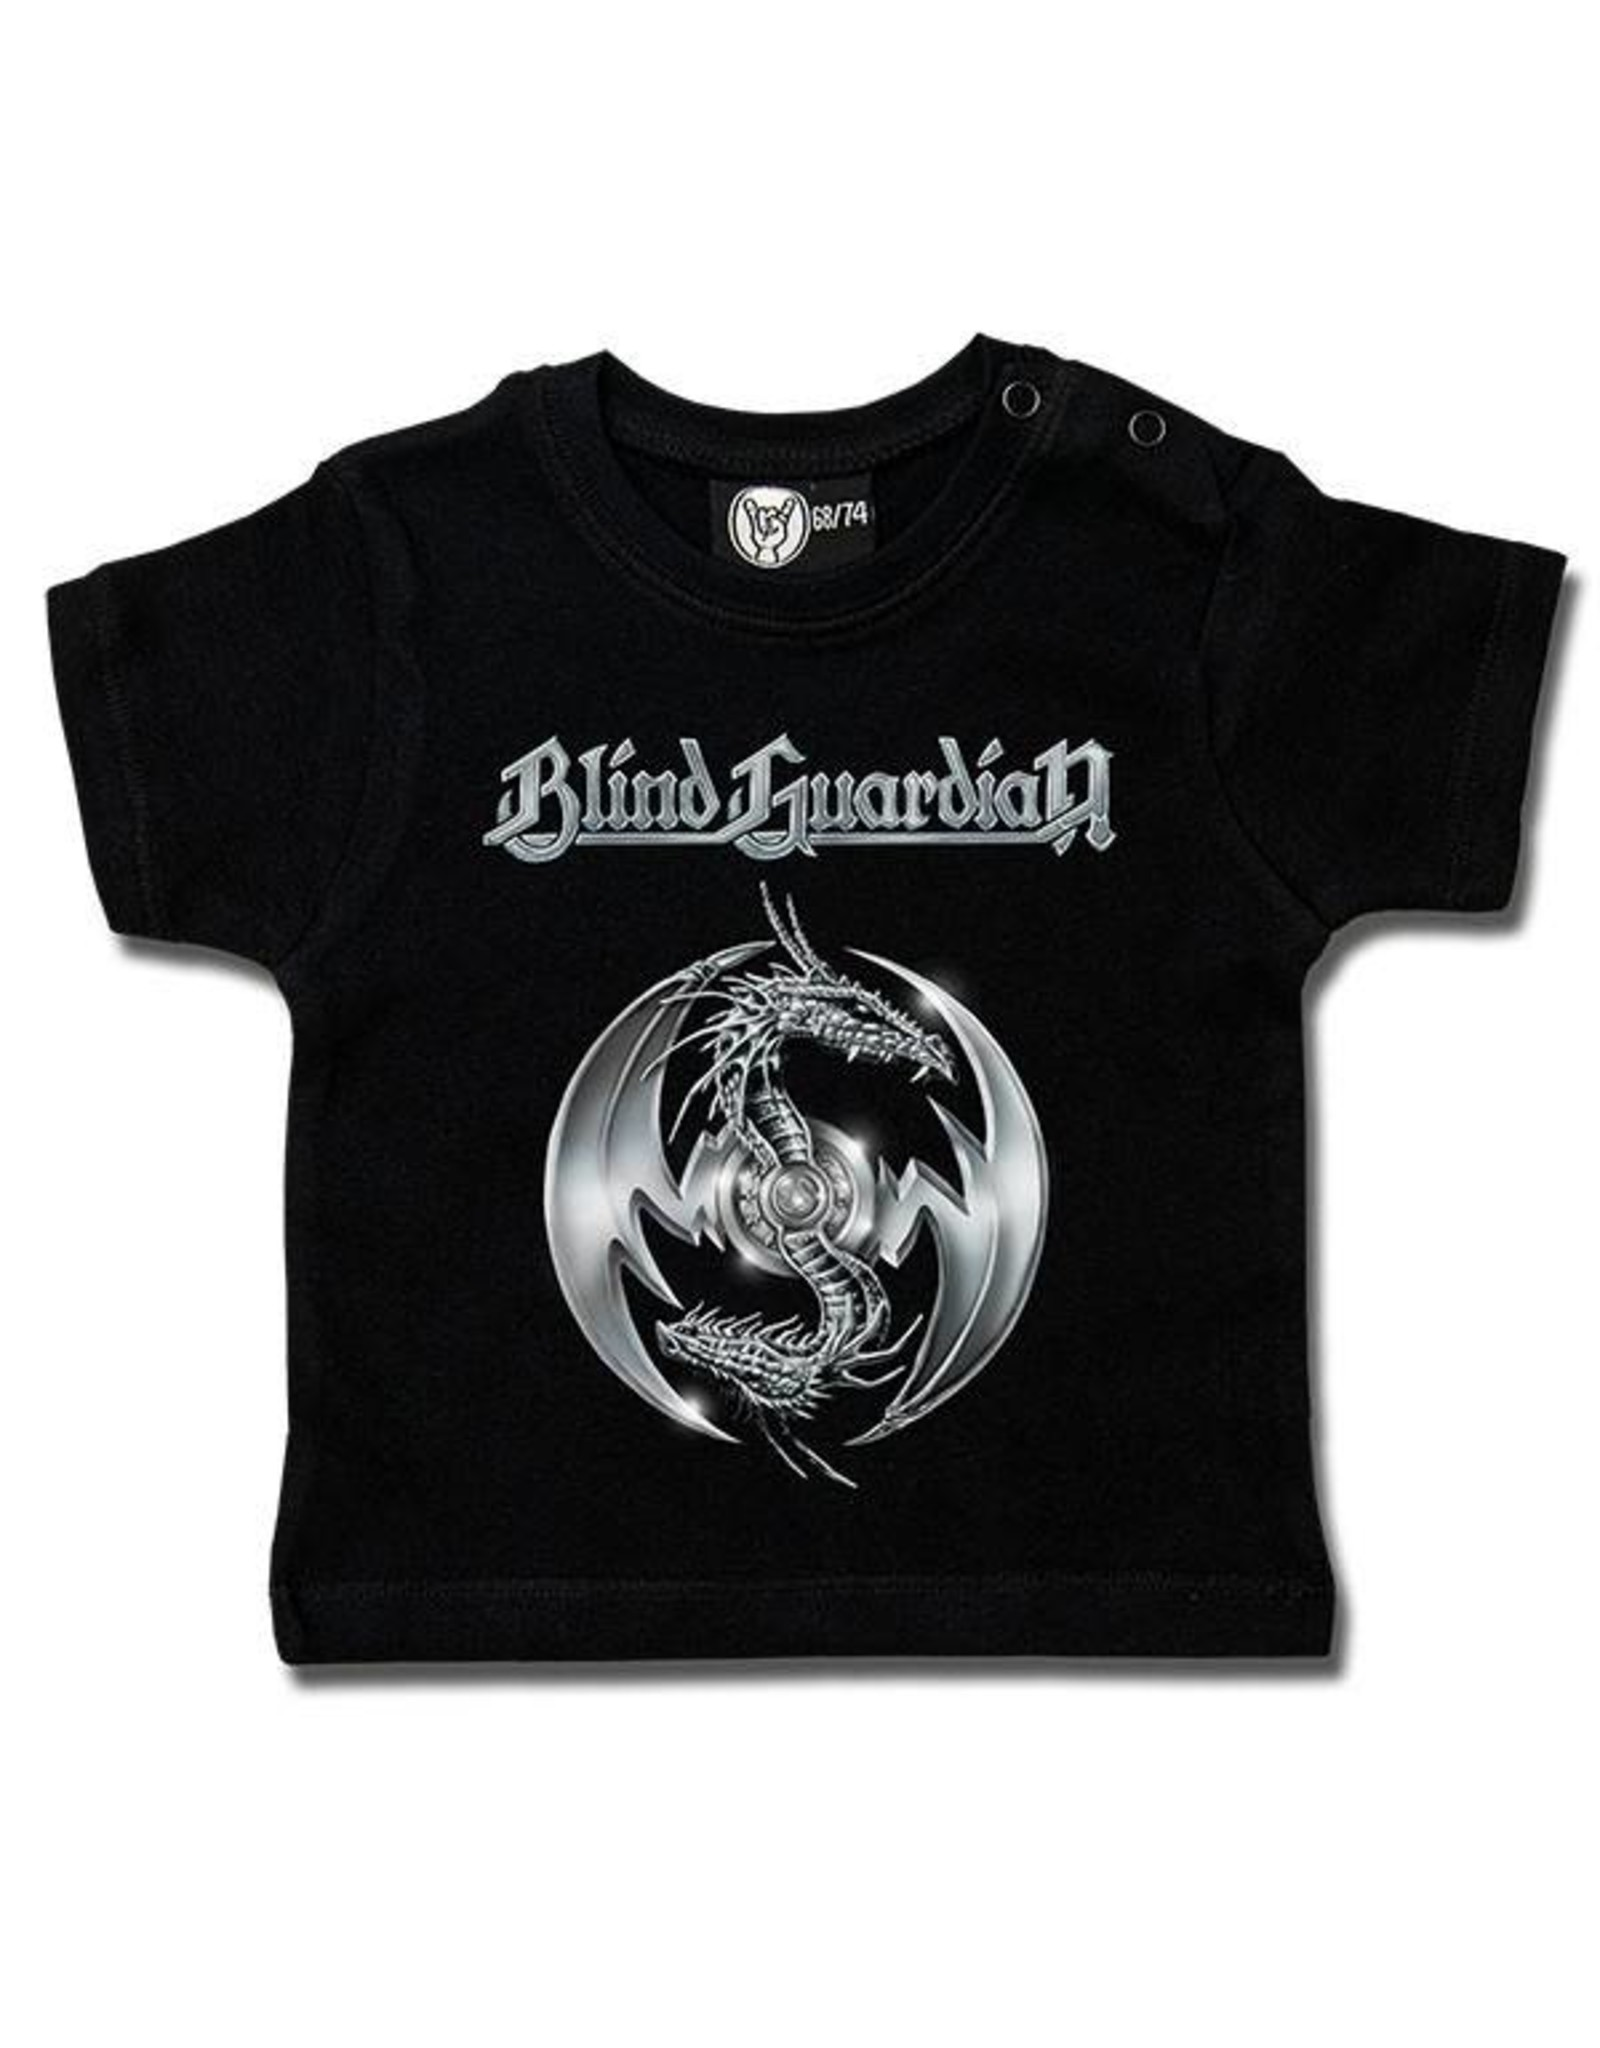 Blind Guardian (Silverdragon) Baby T-Shirt